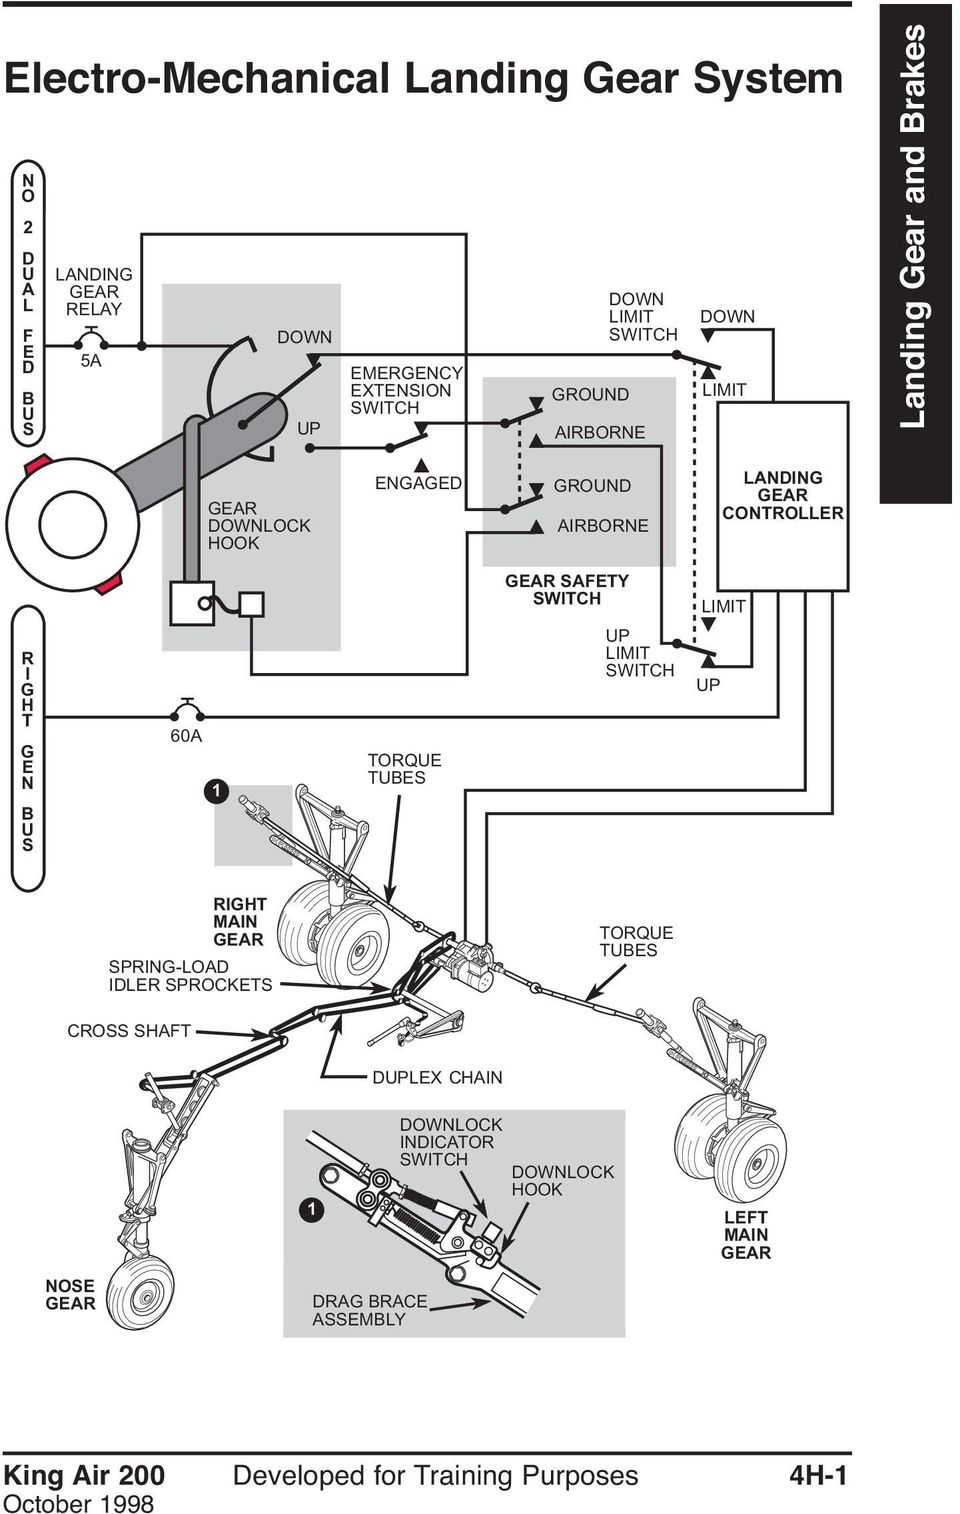 Electro-Mechanical Landing Gear System. Landing Gear and